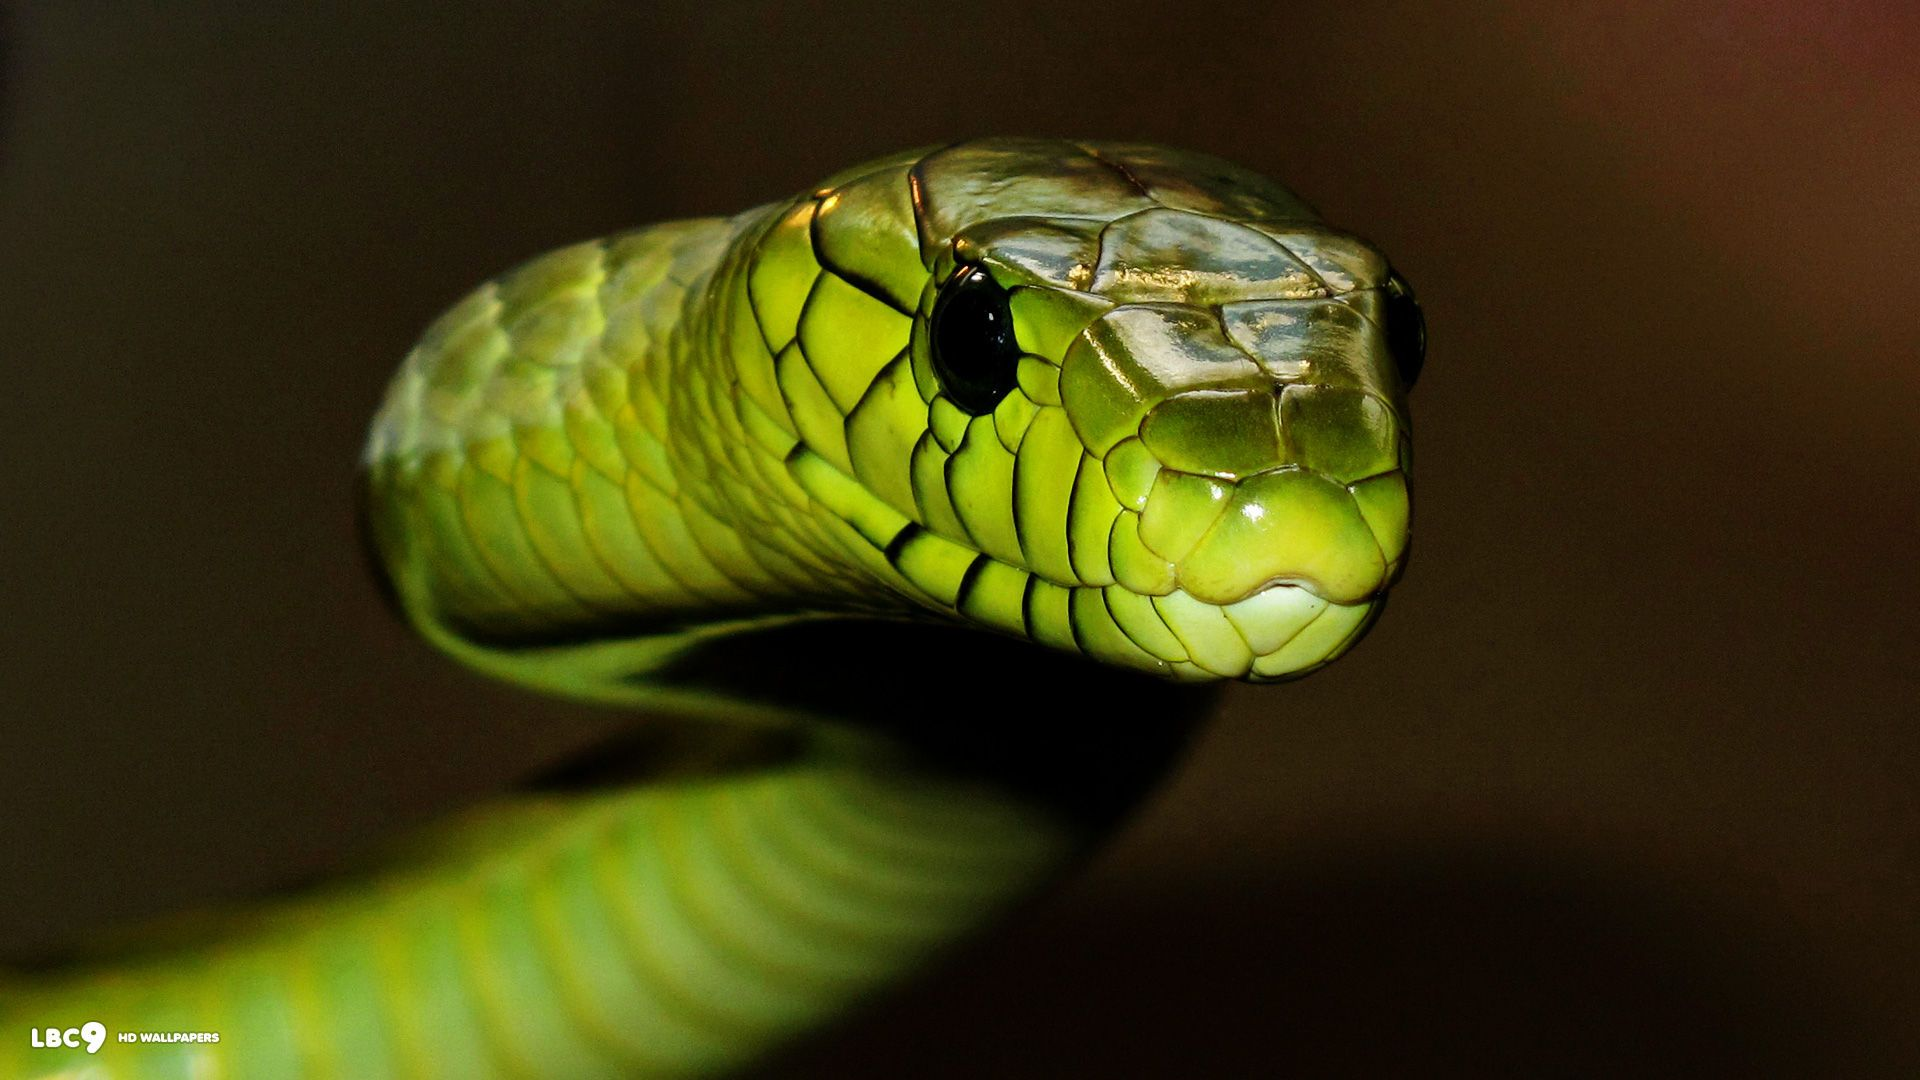 Free Black Mamba Snake Wallpaper APK Download For Android GetJar 1024x658 Wallpapers 39